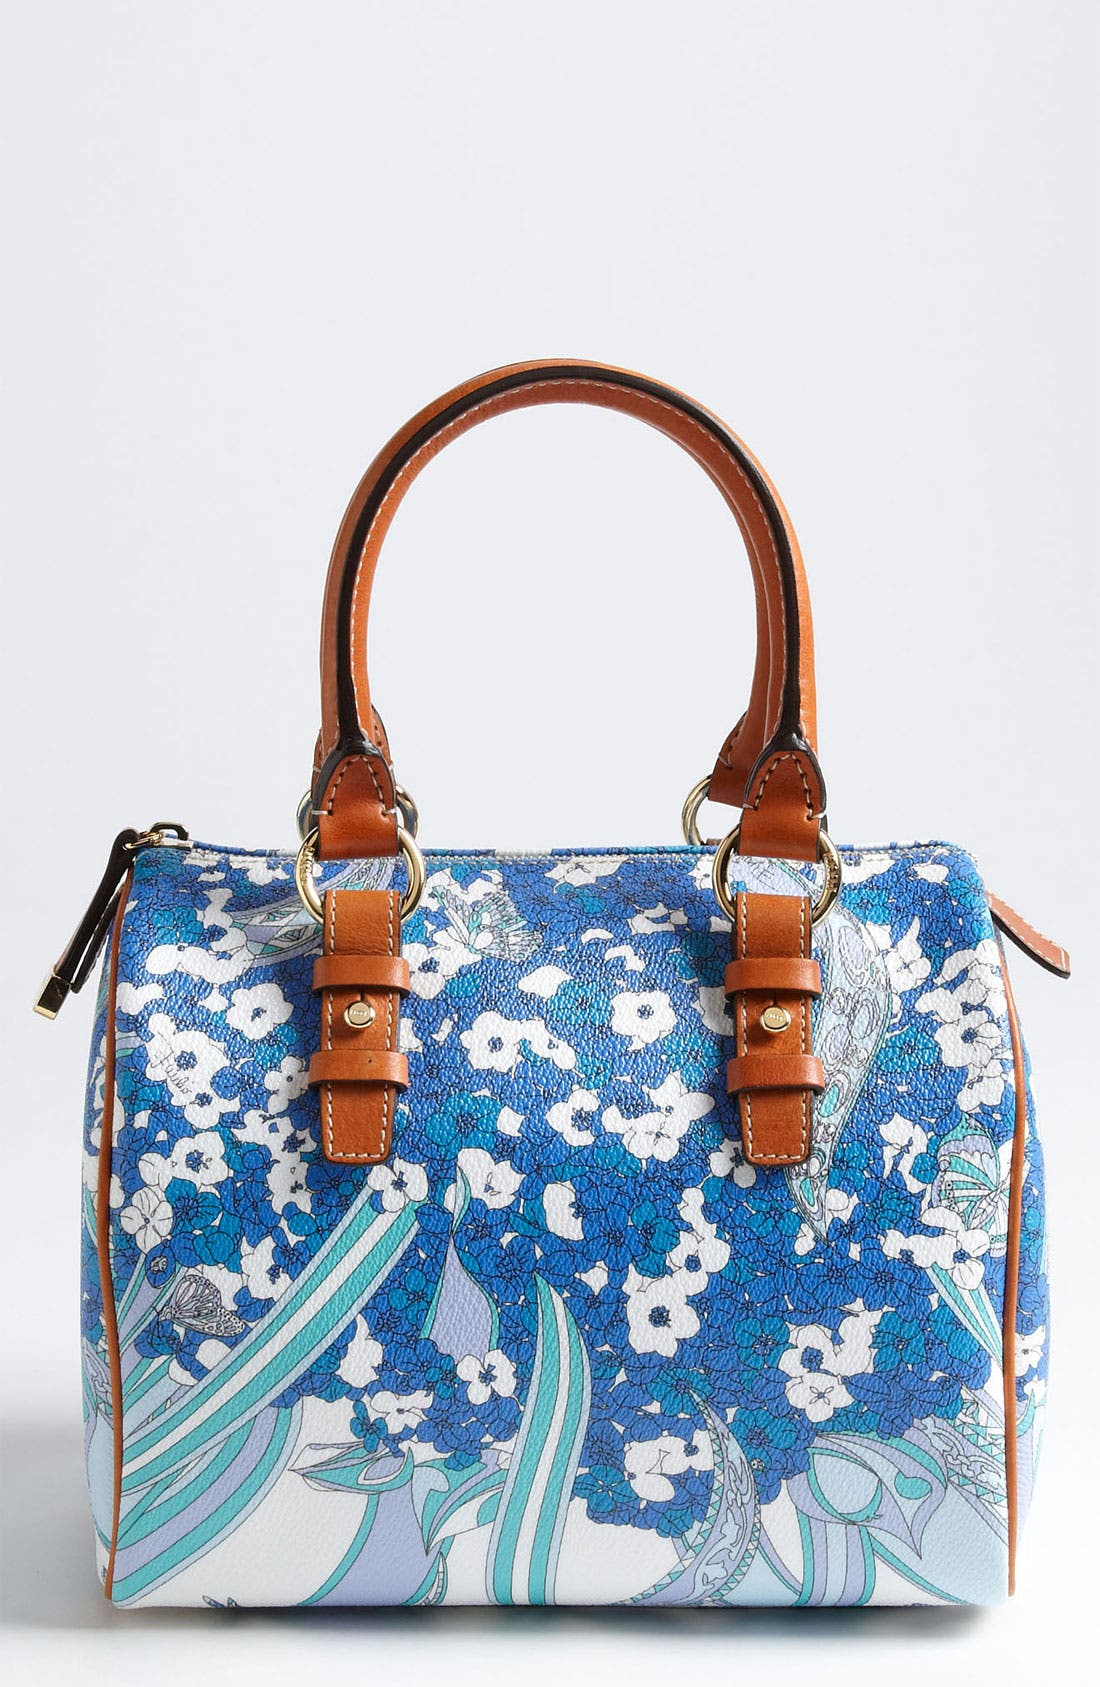 Alternate Image 1 Selected - Emilio Pucci 'Small' Boston Bag